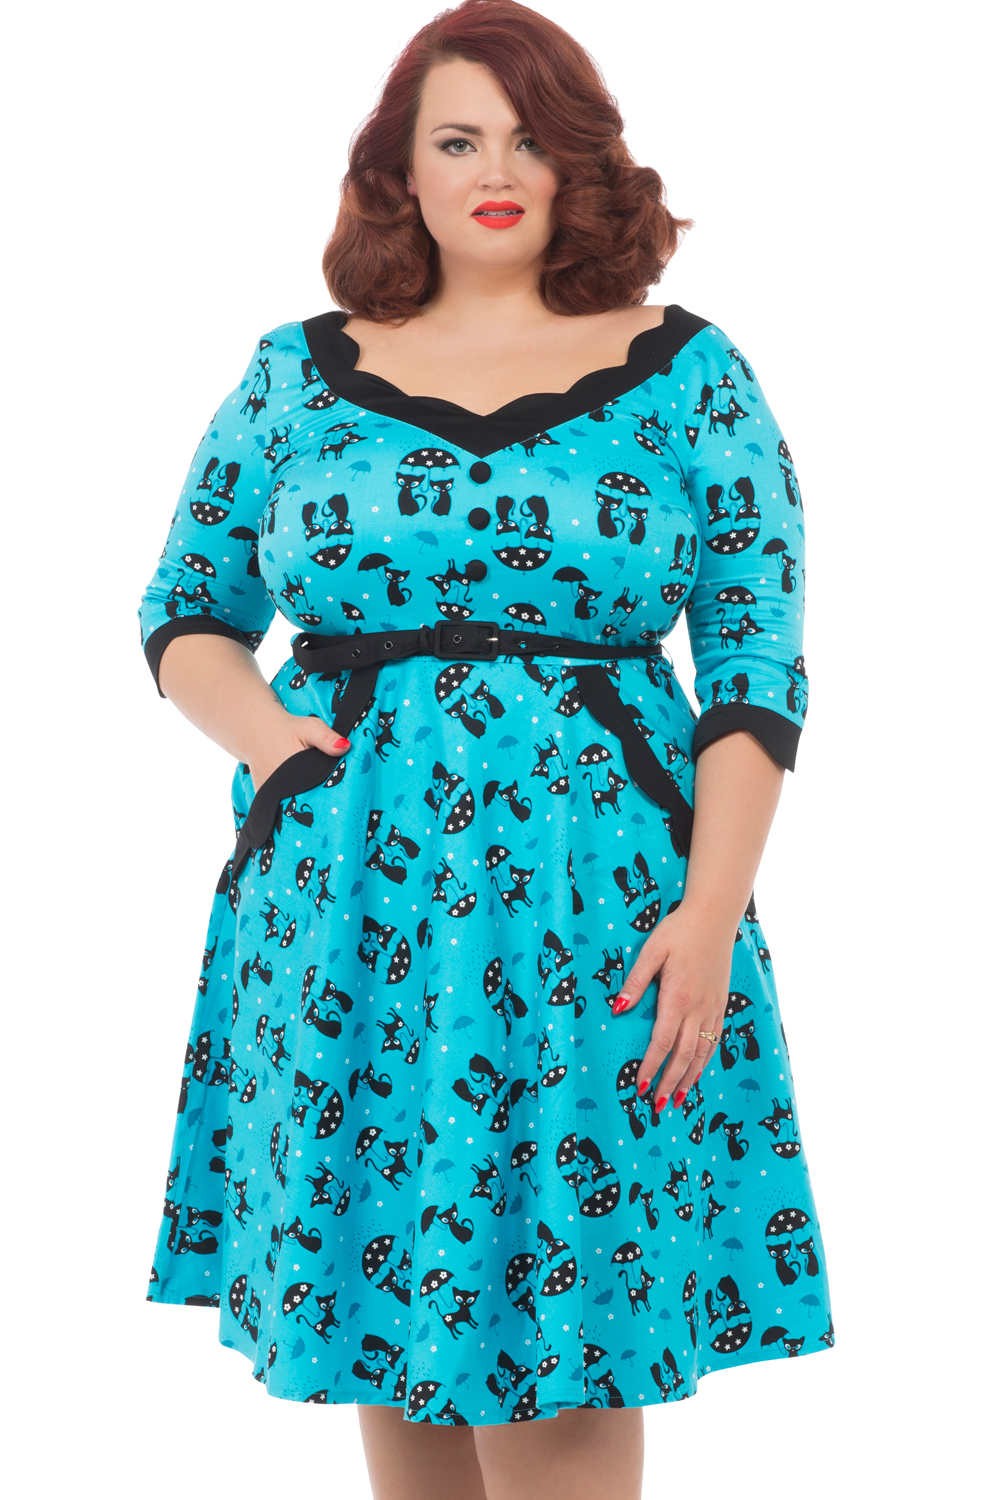 Voodoo Vixen Blue Katnis Plus Size Dress